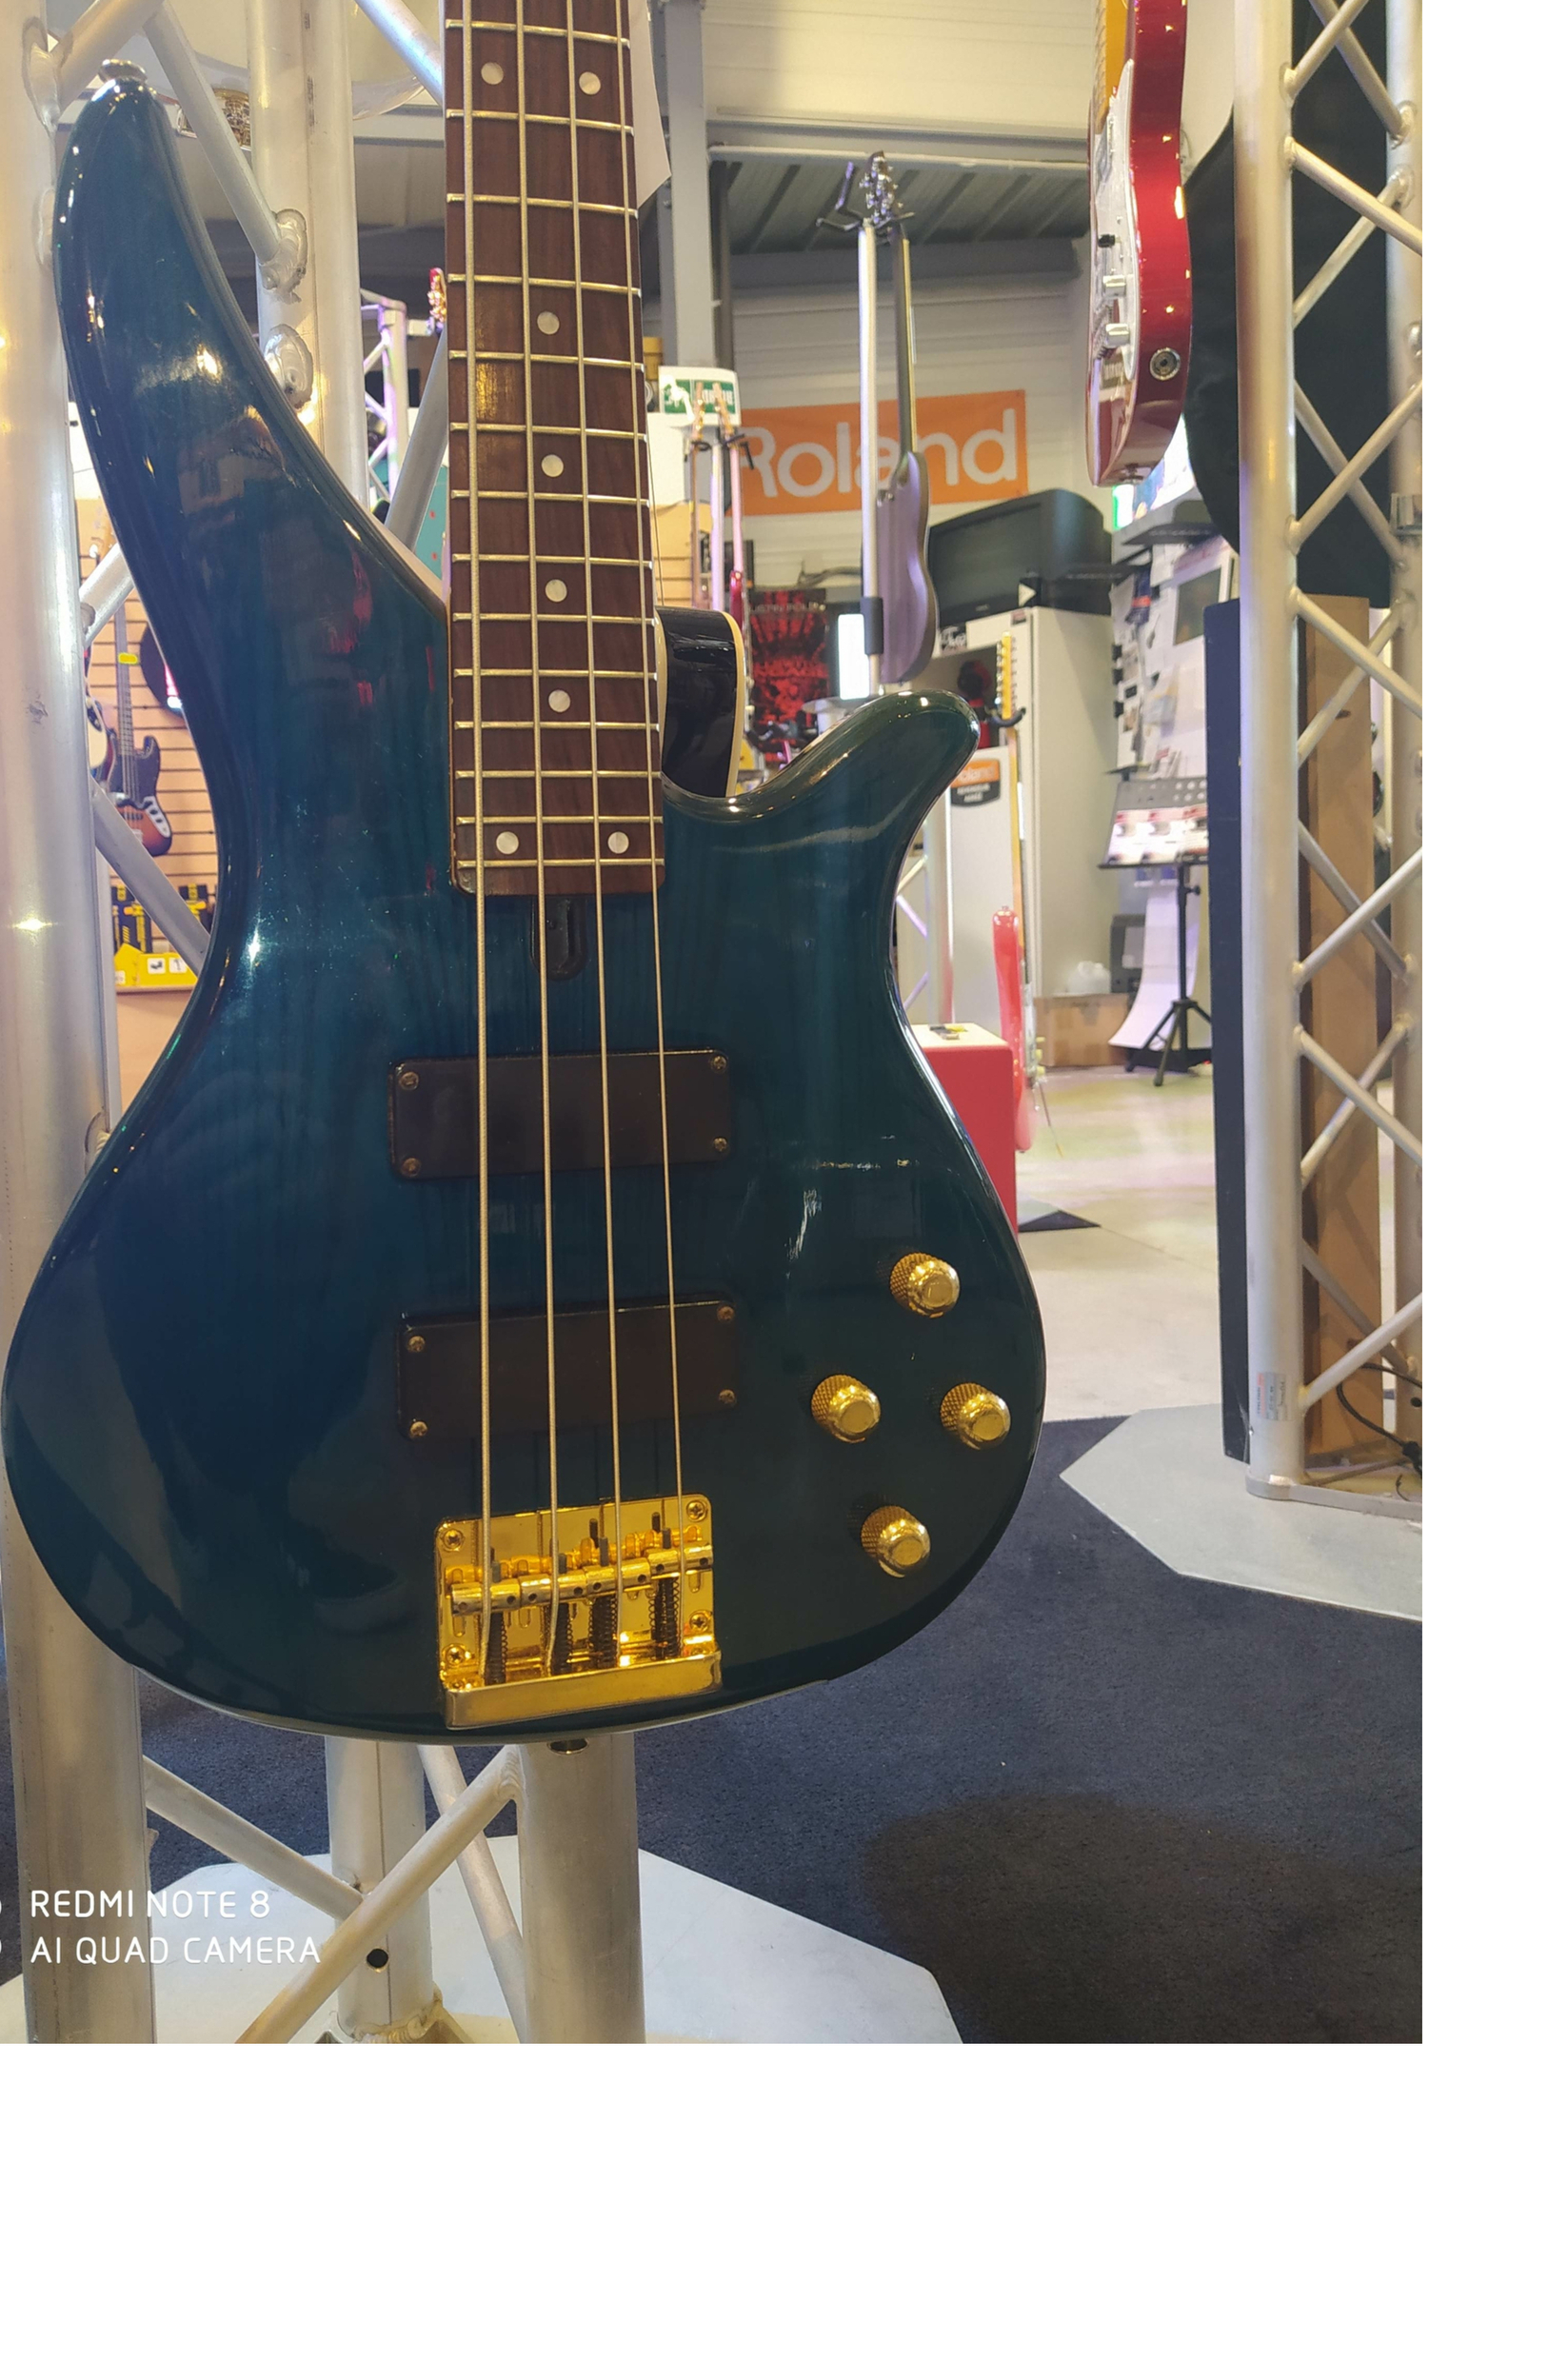 OCCASION BASSE YAMAHA ACTIVE RBX760A